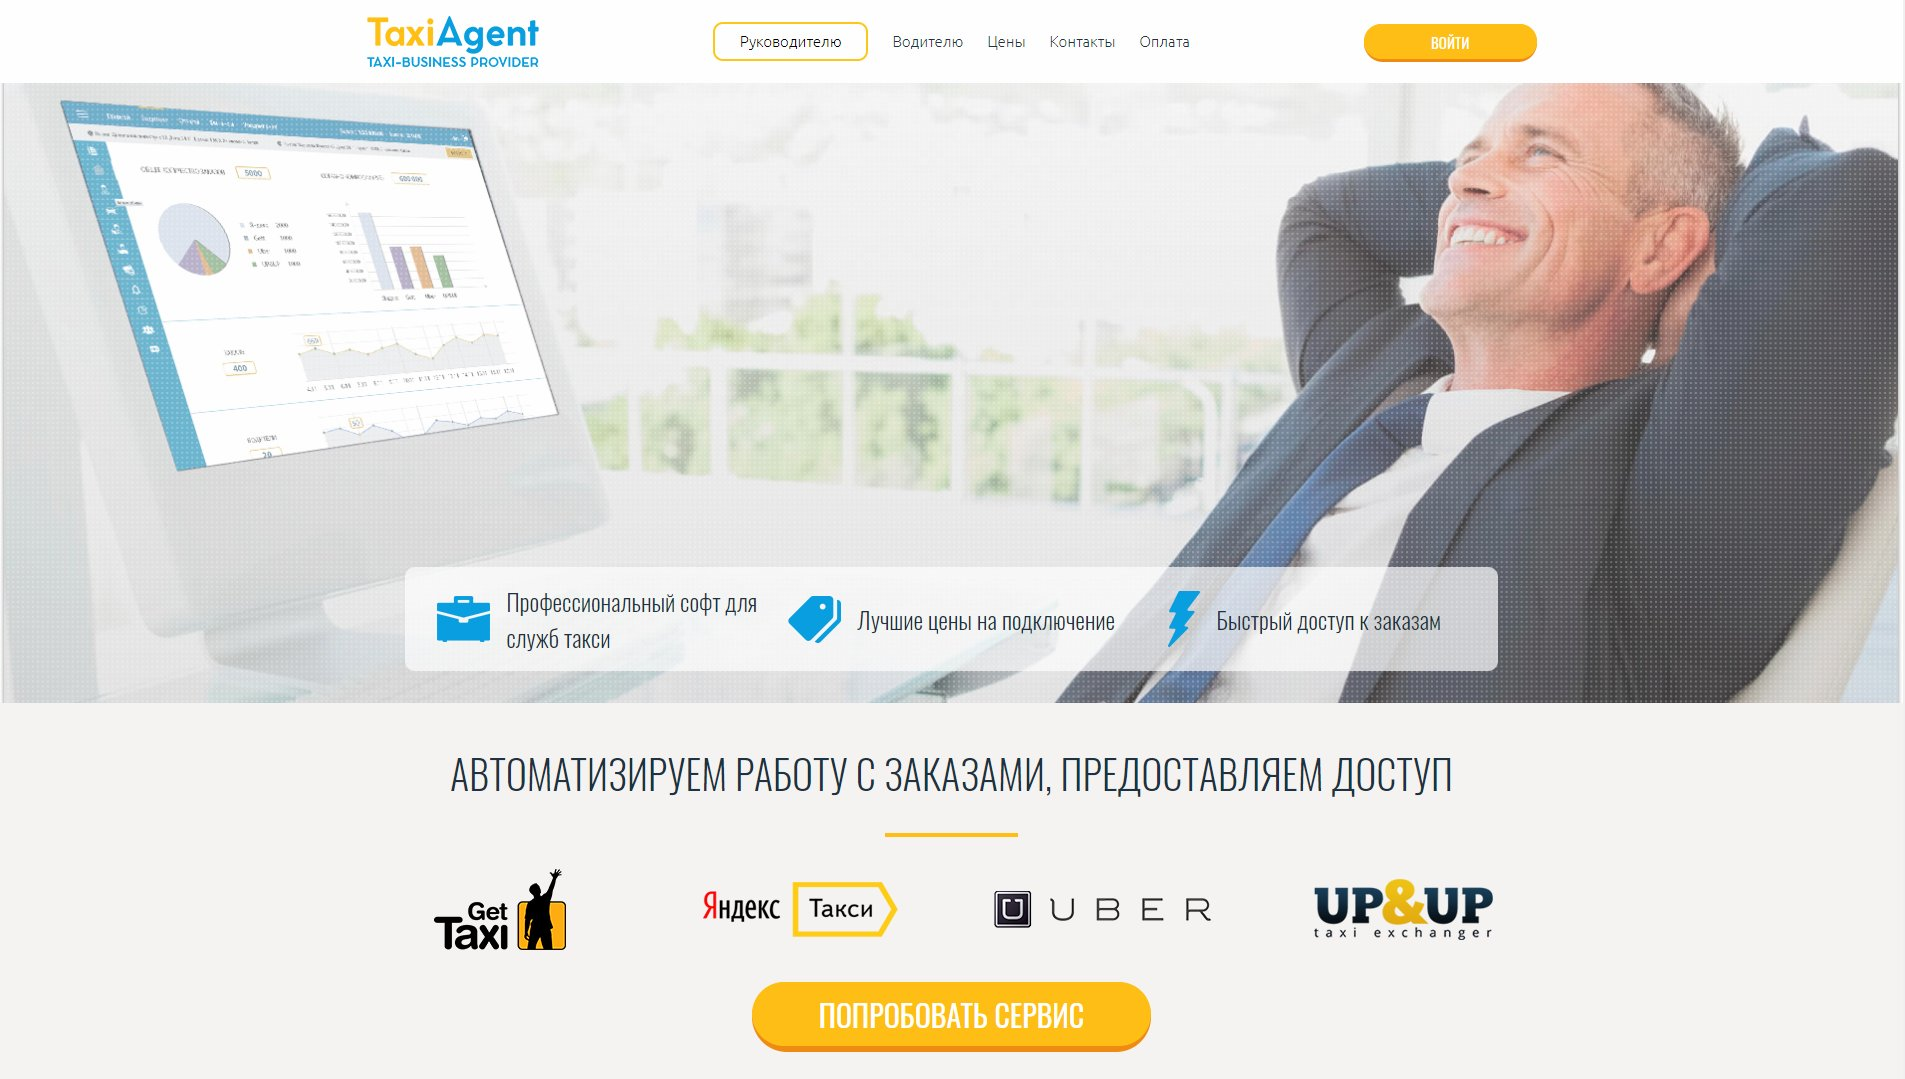 TaxiAgent - for leader